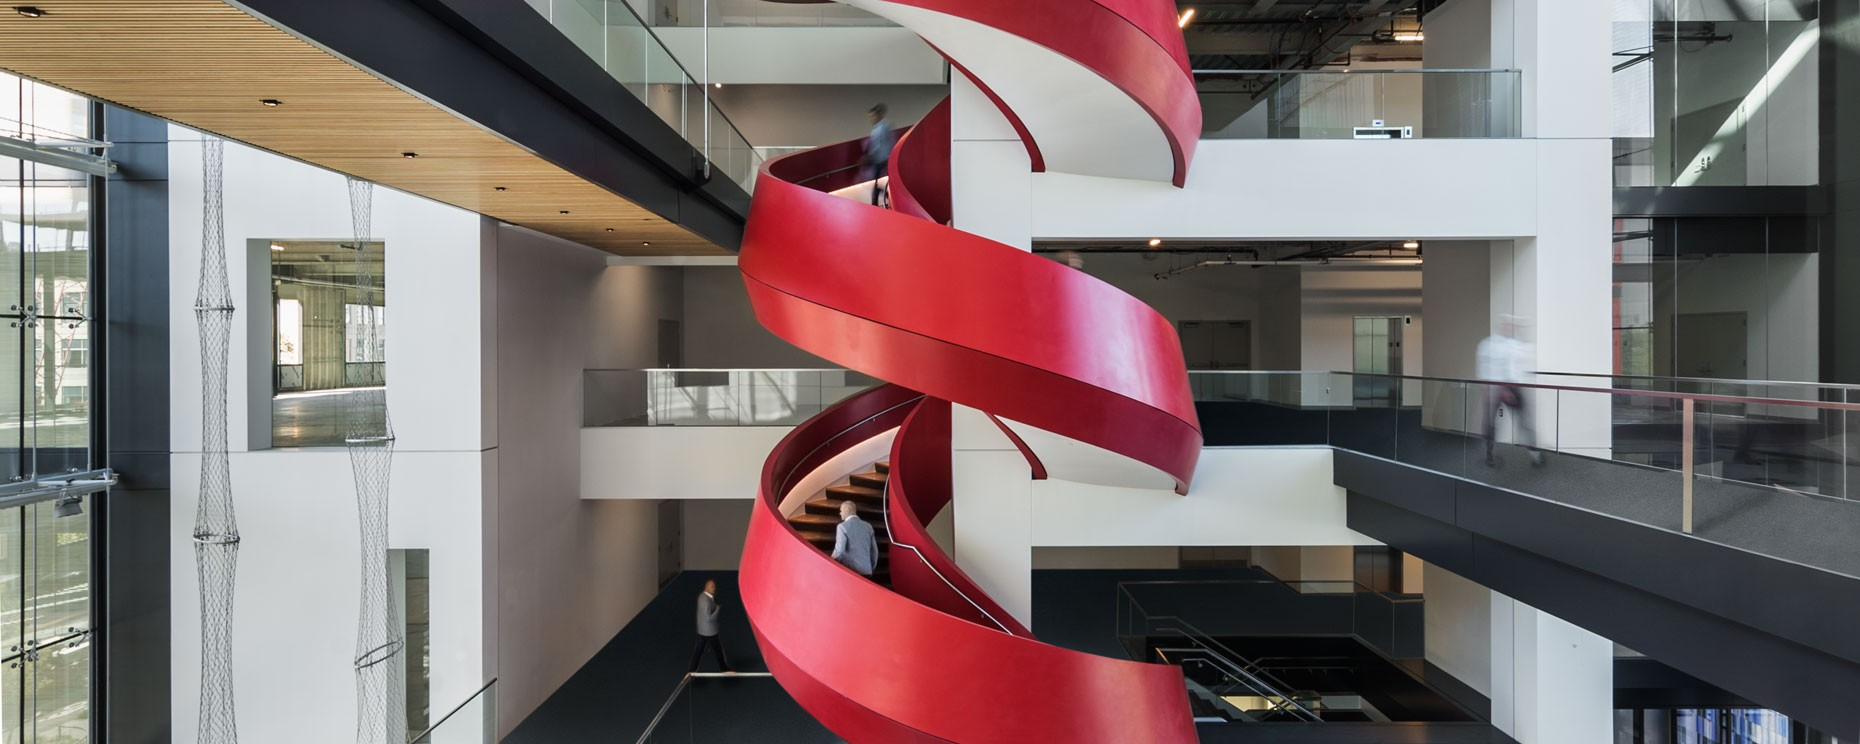 thermoformed-krion-spiral-staircase